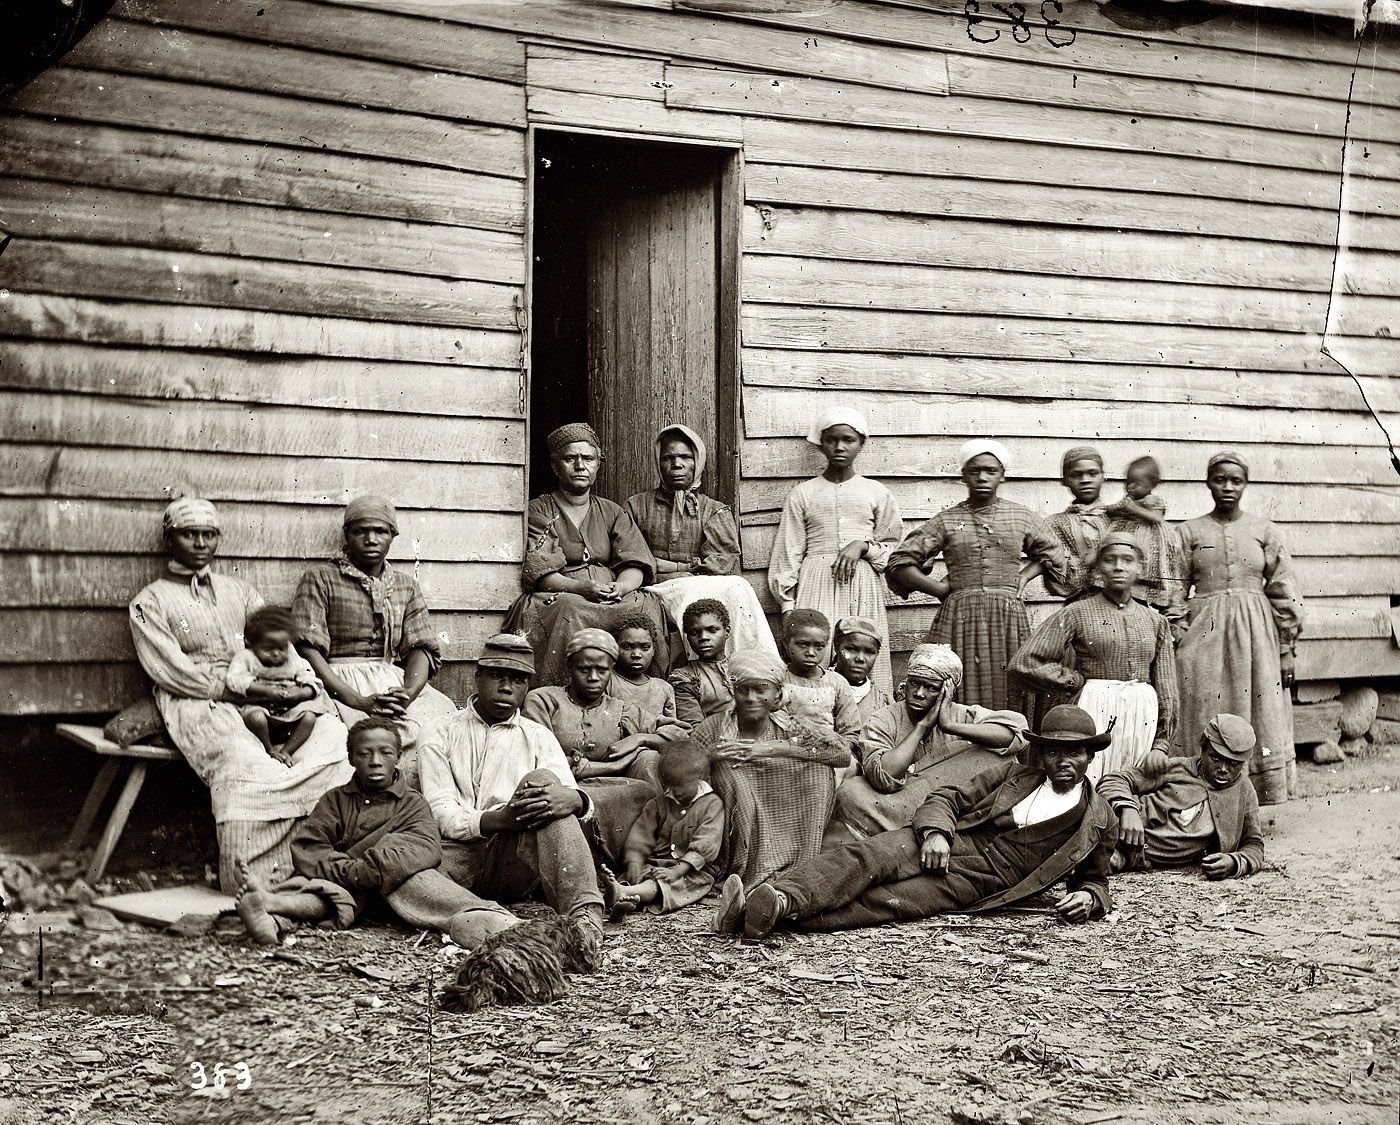 women, slaves, and free blacks in the civil war essay Freed blacks rights after the civil war during the year of 1865, after the north's victory in the civil war, the republican party began to pass national legislation in order to secure free blacks' rights.